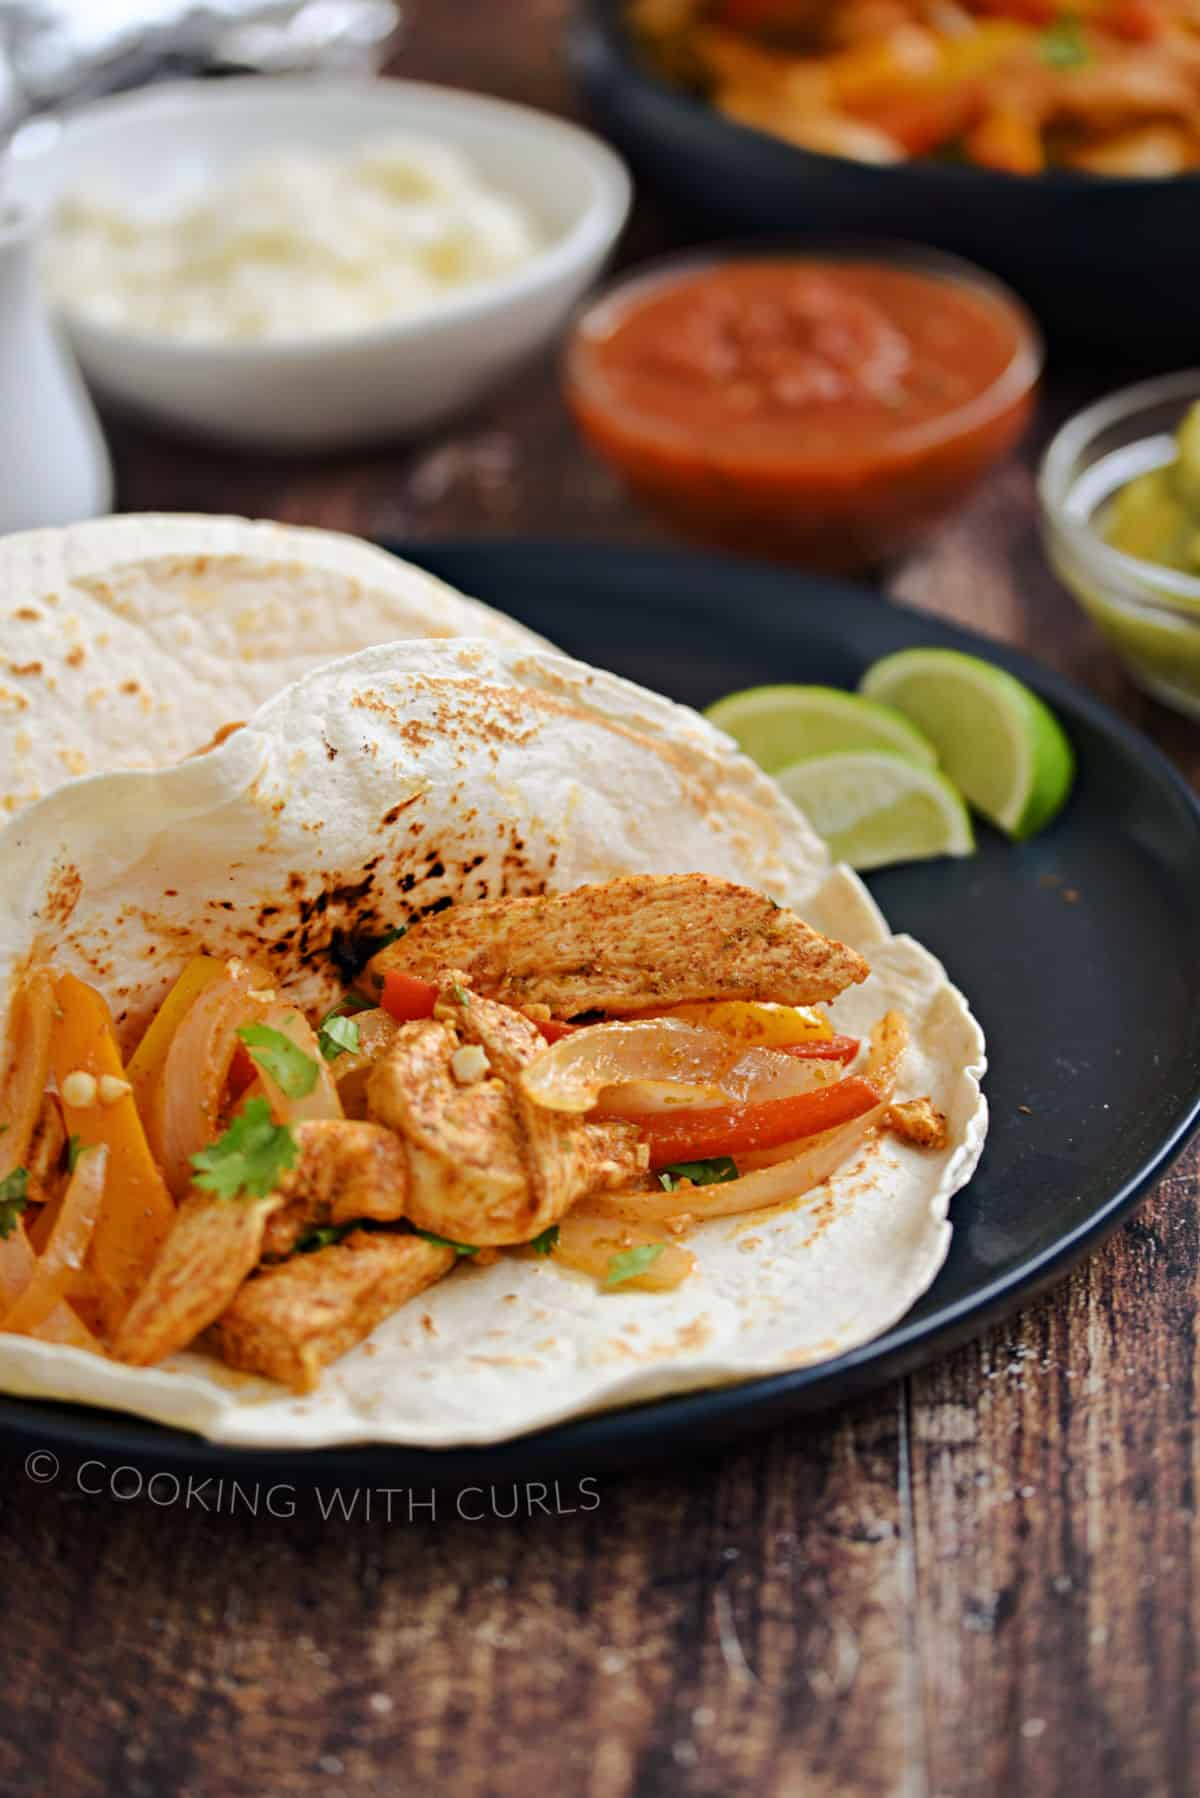 Chicken, onion, and bell pepper strips in flour tortillas with bowls of queso, salsa, and avocado in the background.